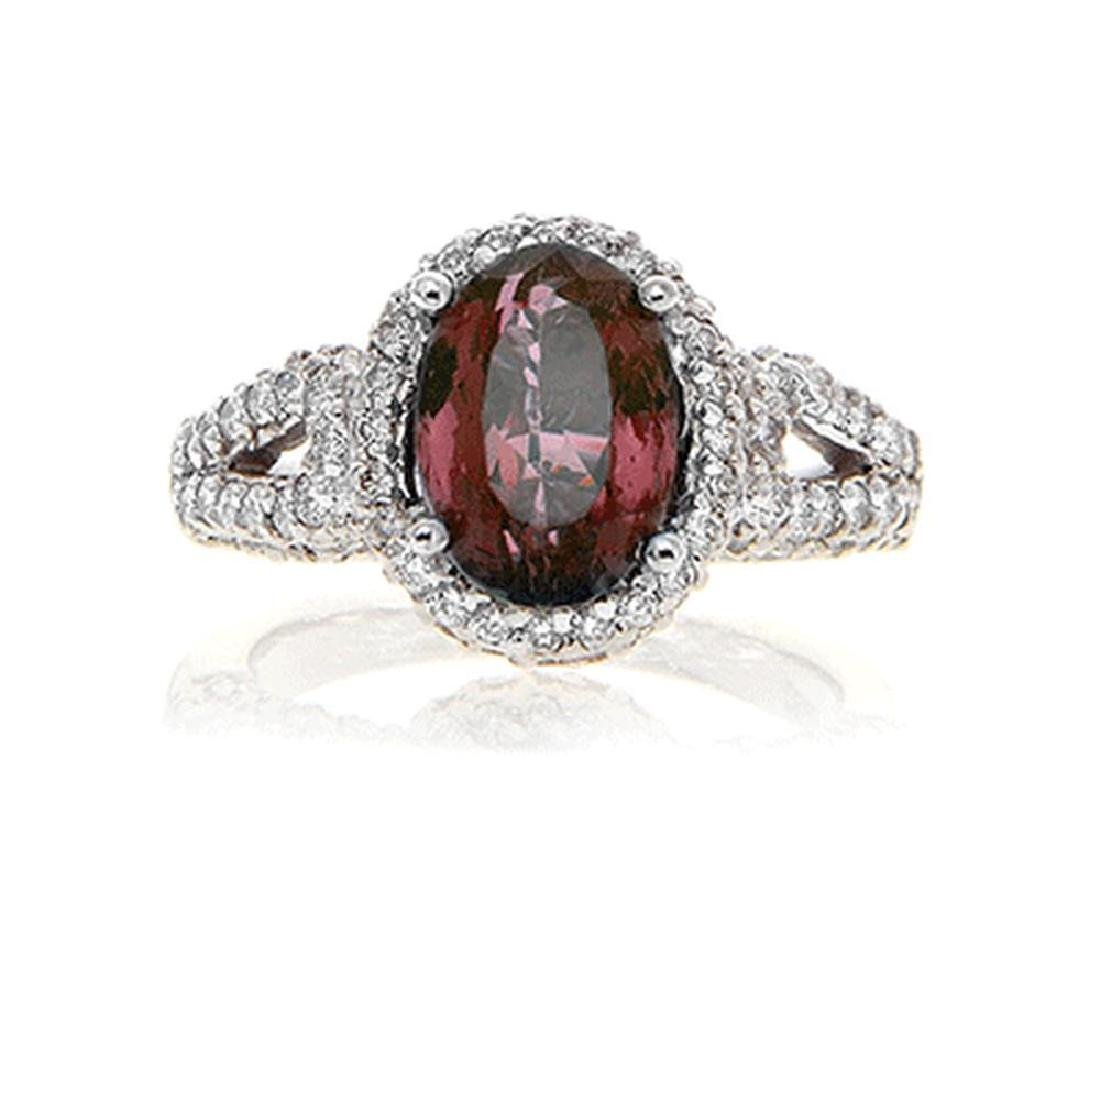 C.DUNAIGRE ALEXANDRITE RING WITH DIAMOND